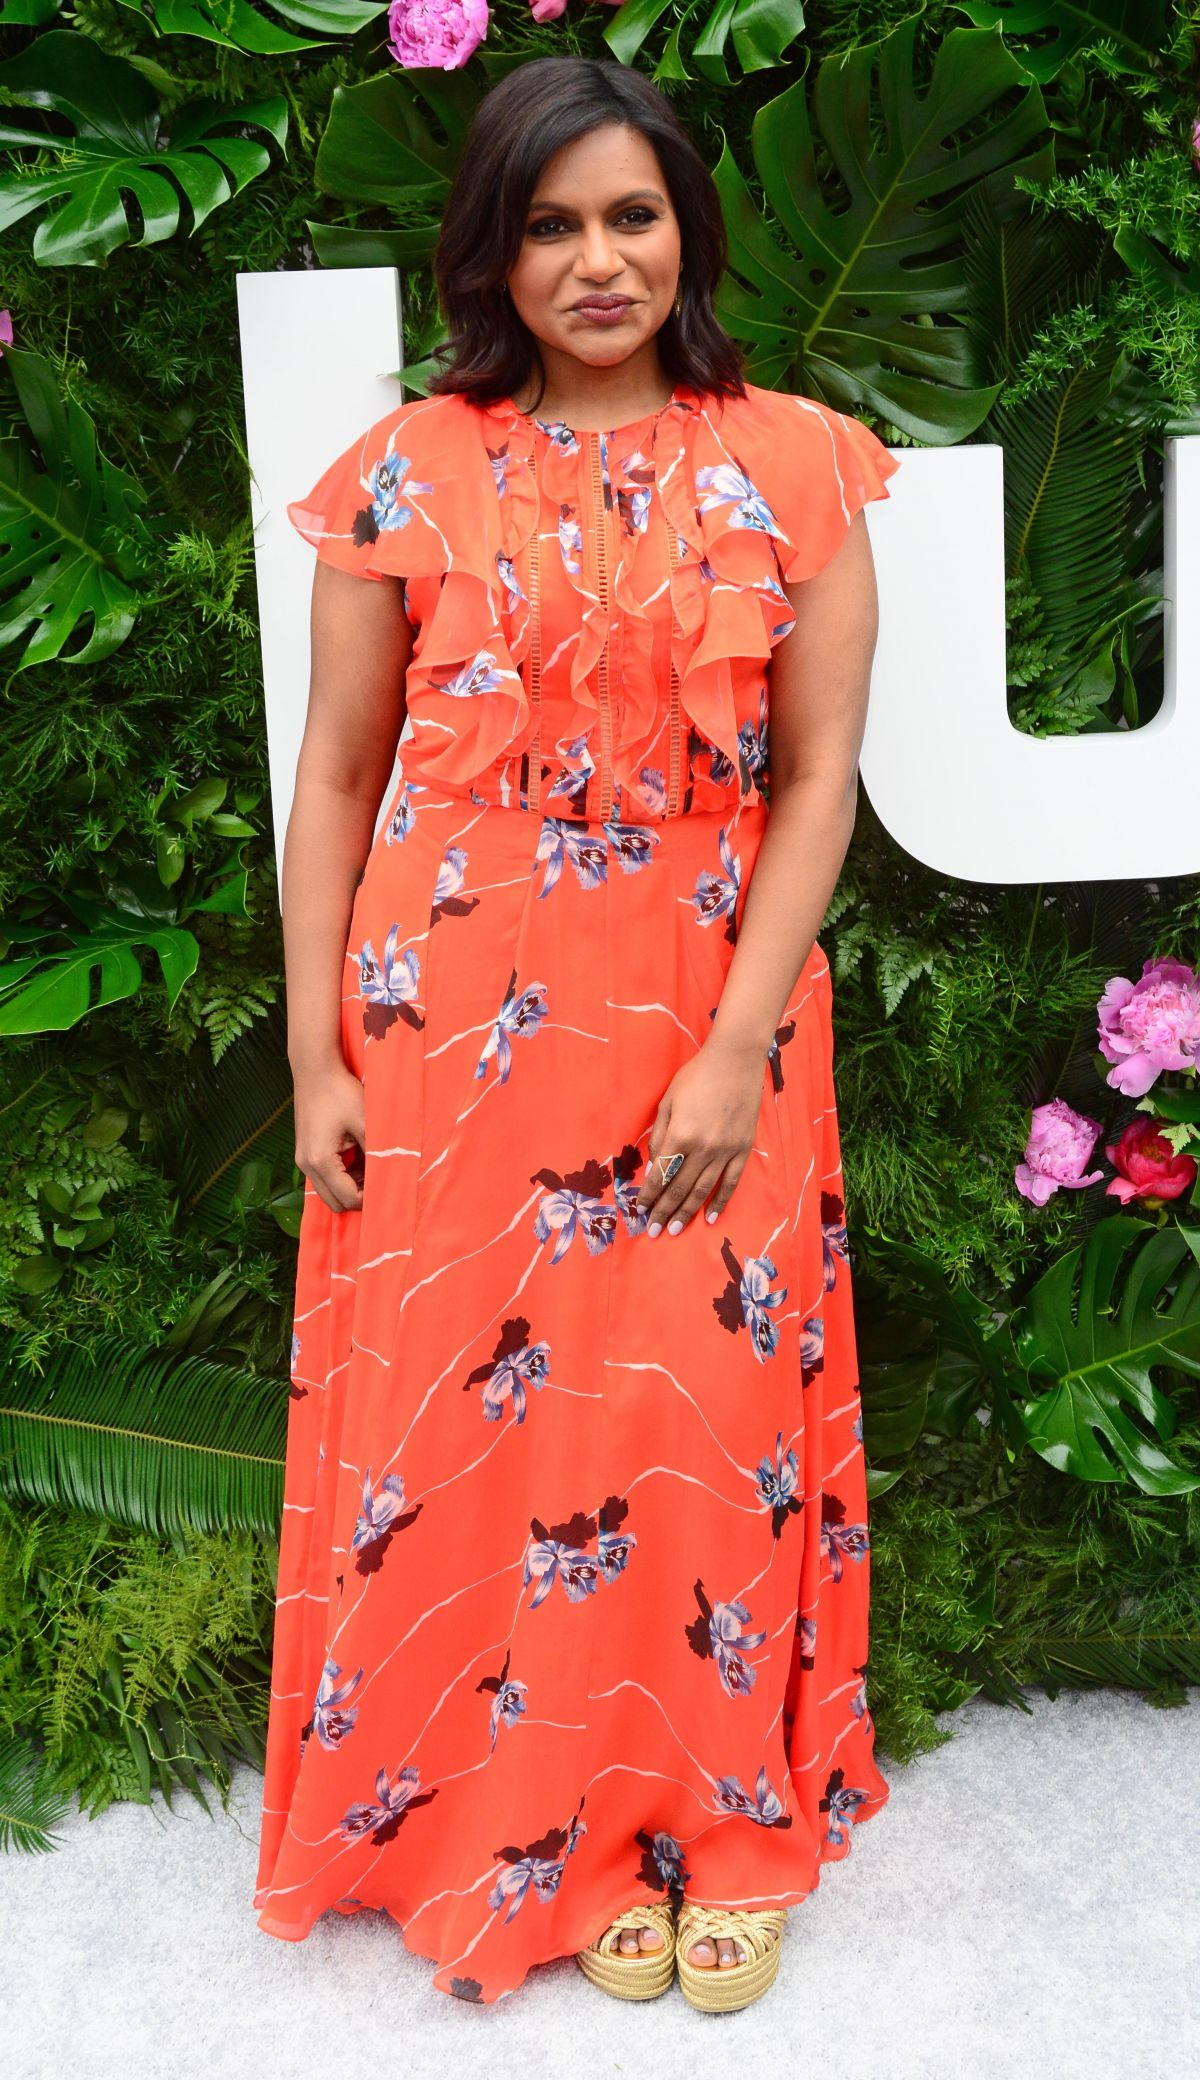 MINDY KALING at Hulu Upfront in New York 05/03/2017